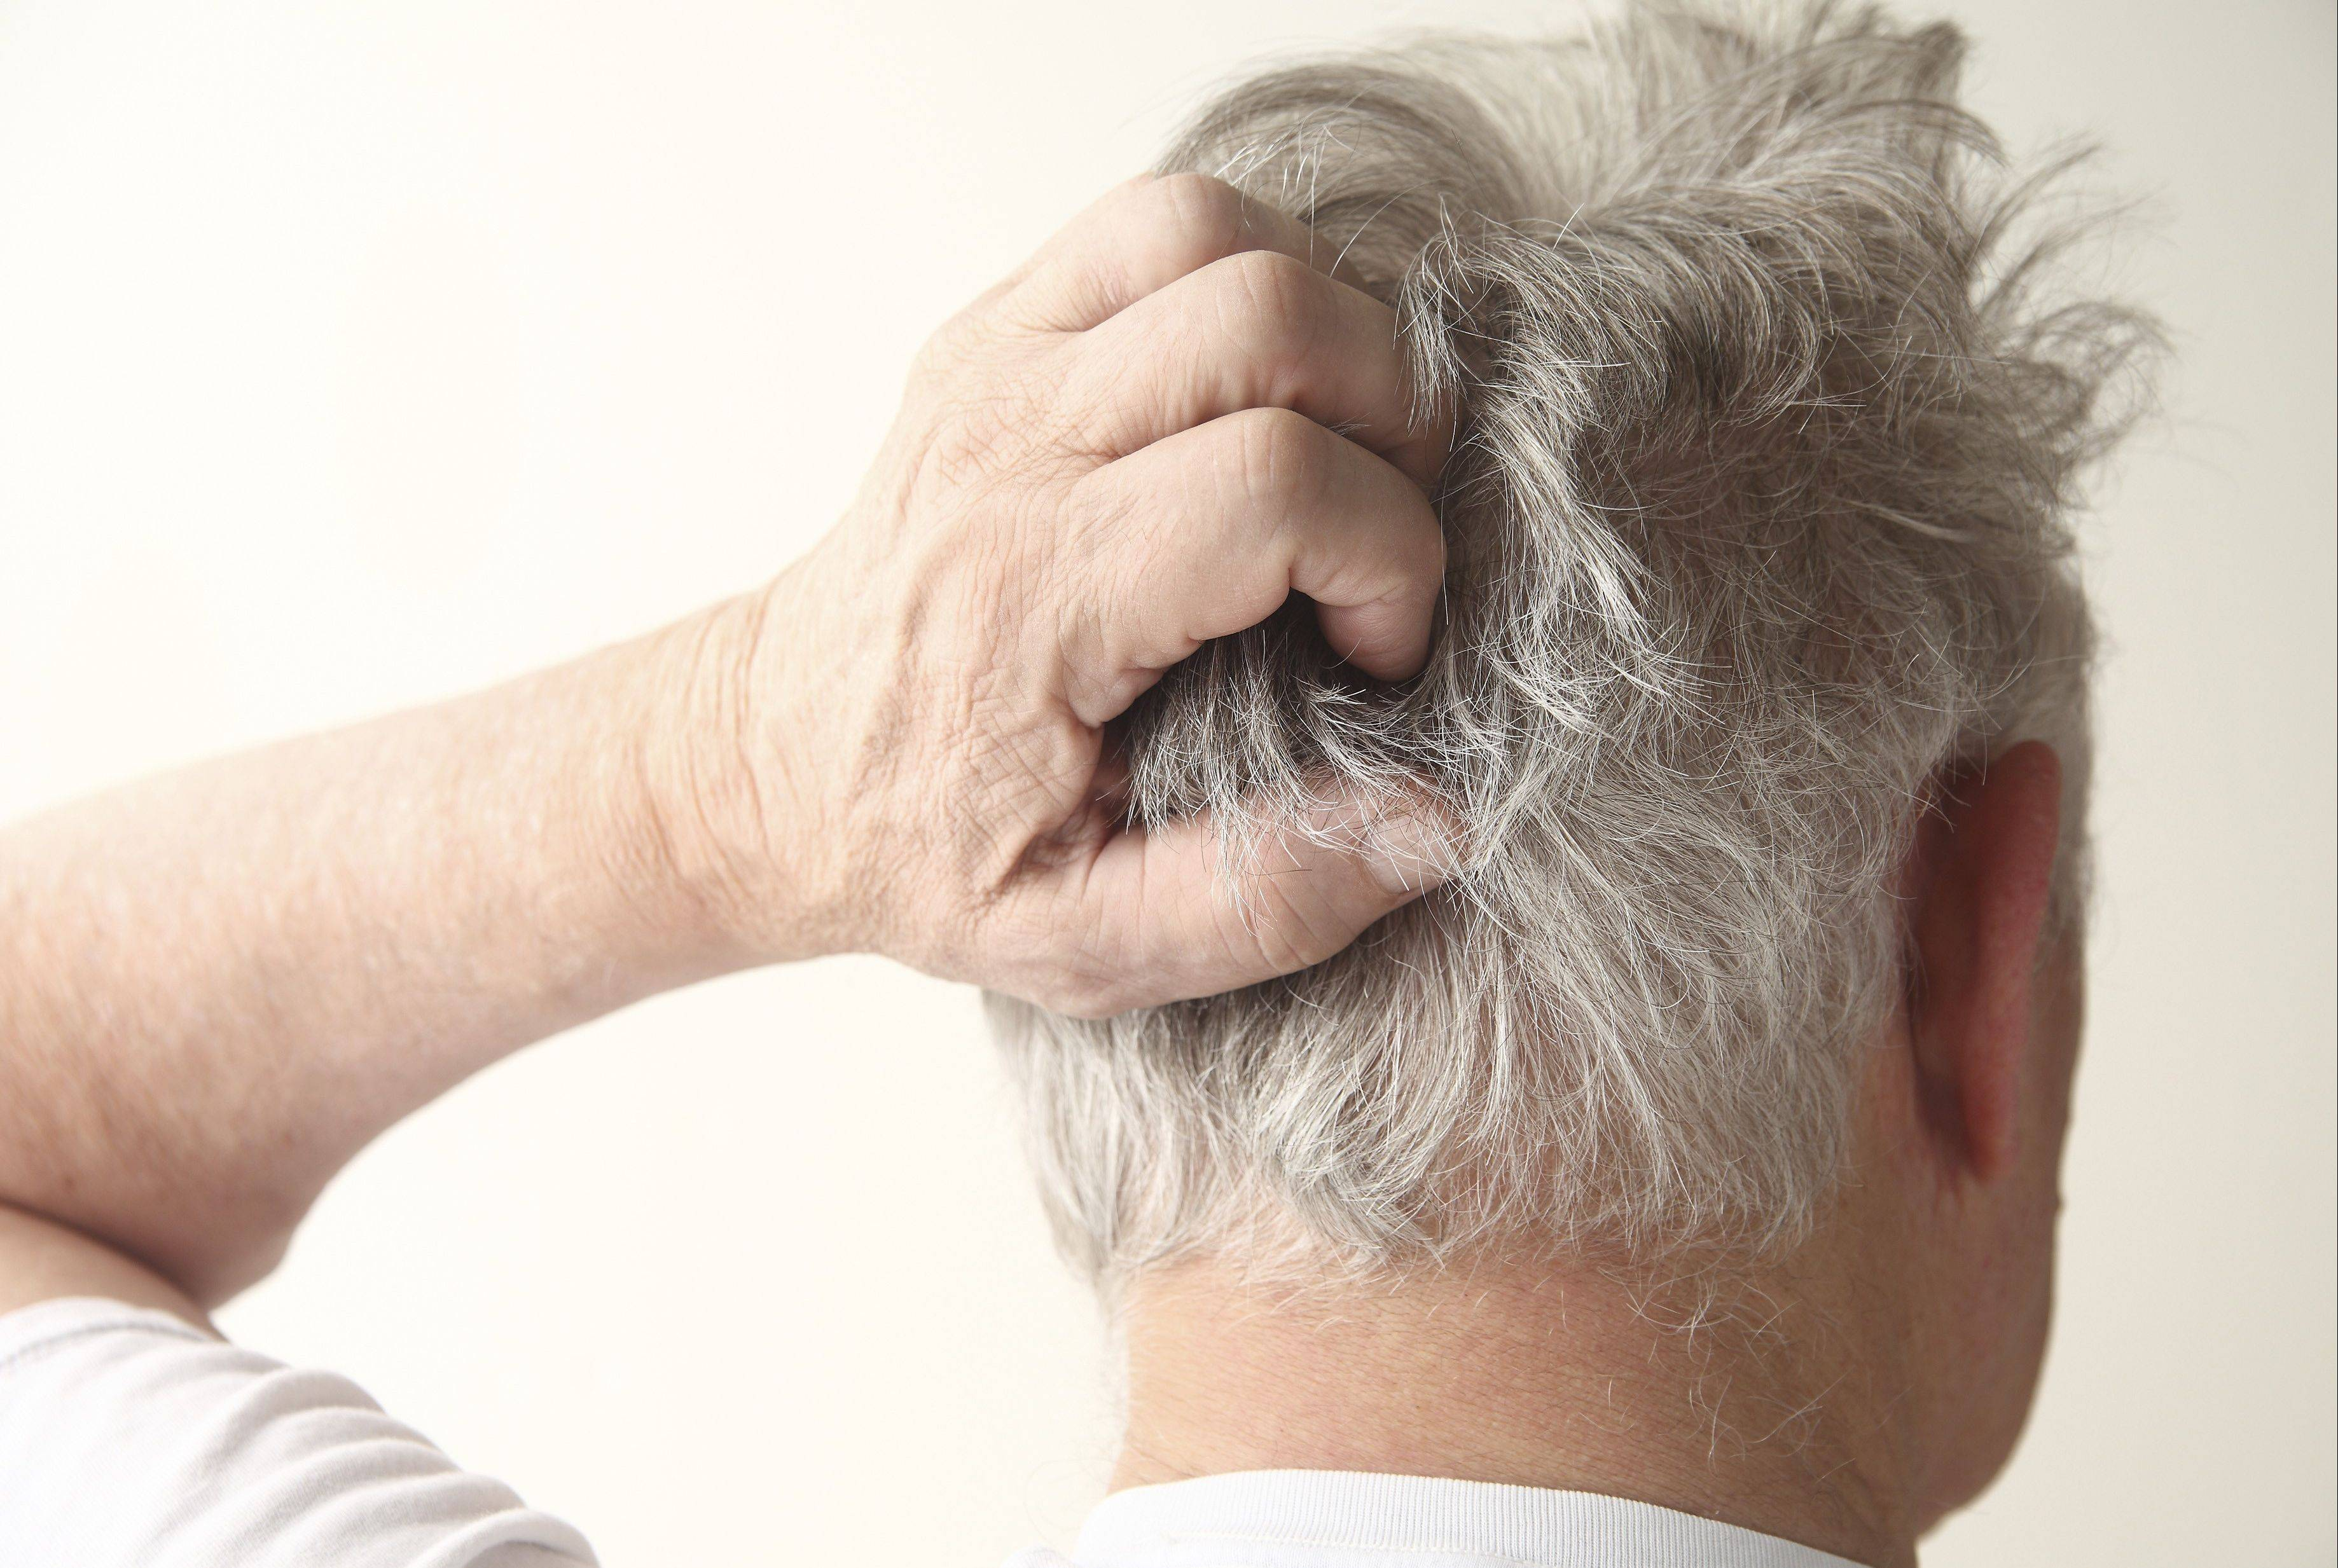 Dandruff and itchy scalp often get worse in winter.